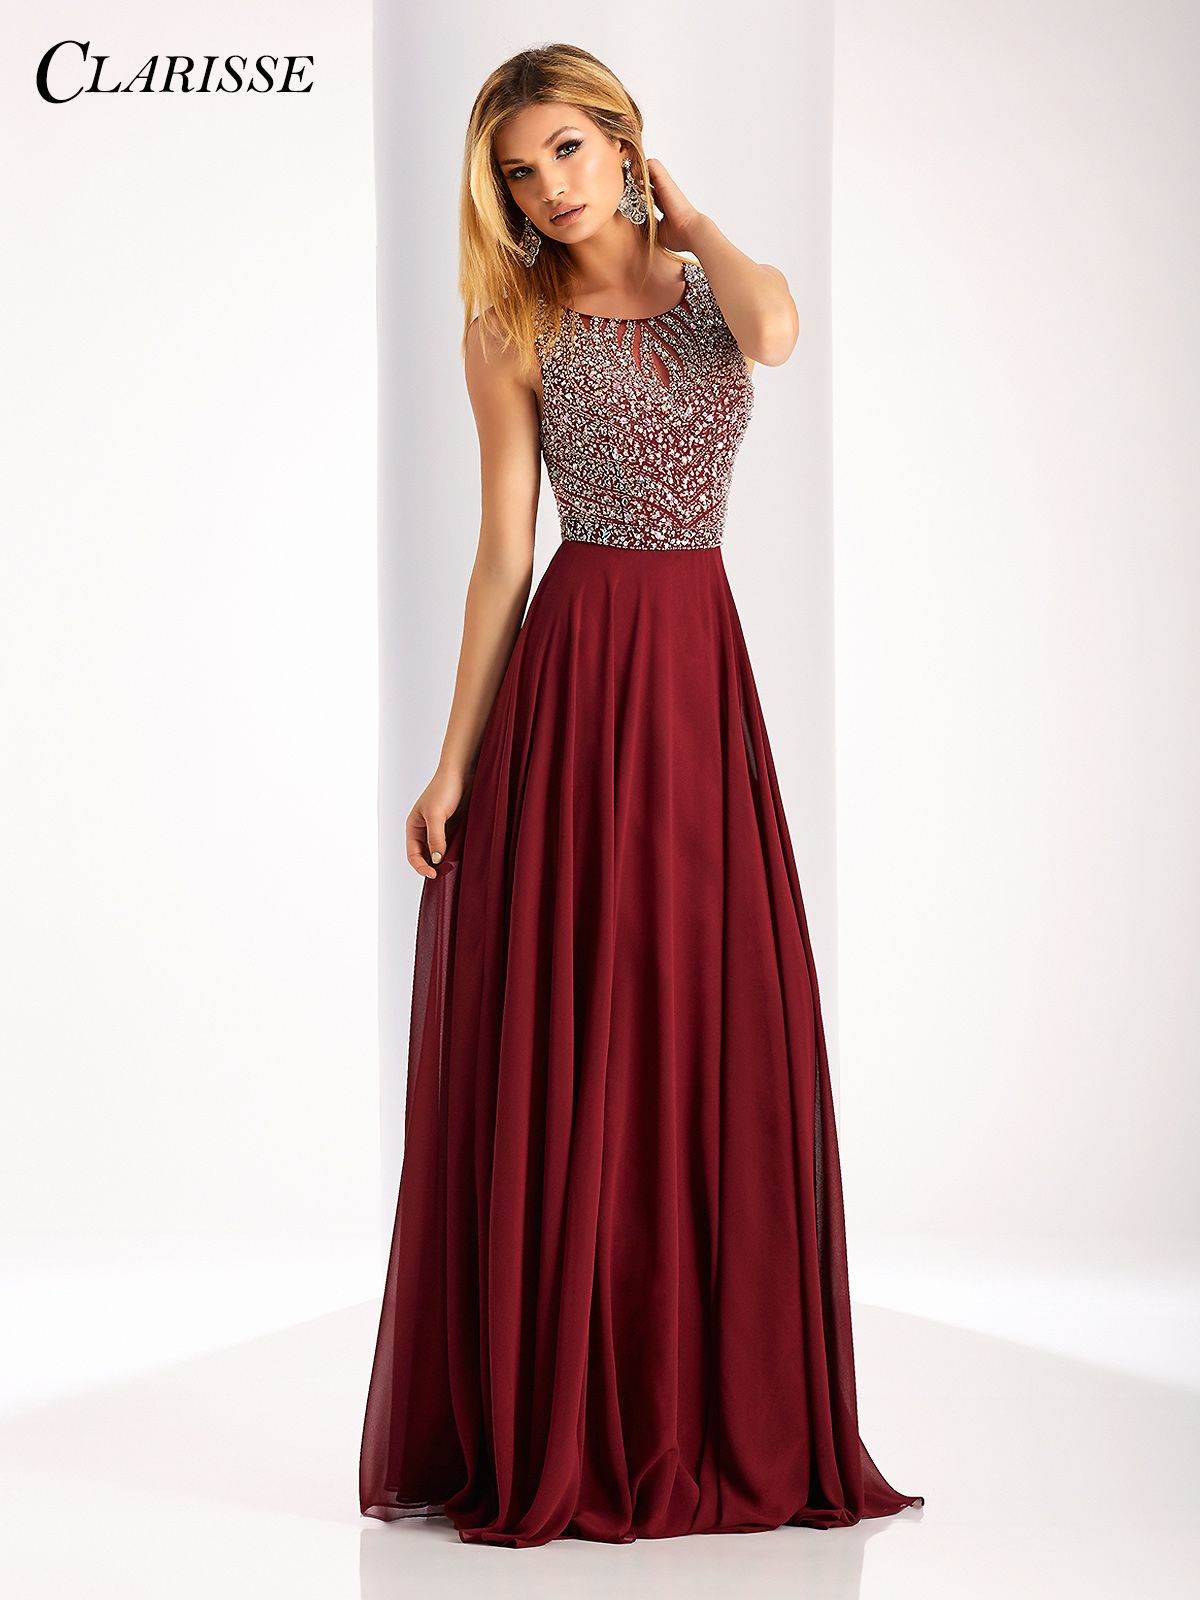 Clarisse sparkling embellished aline prom dress prom stuff